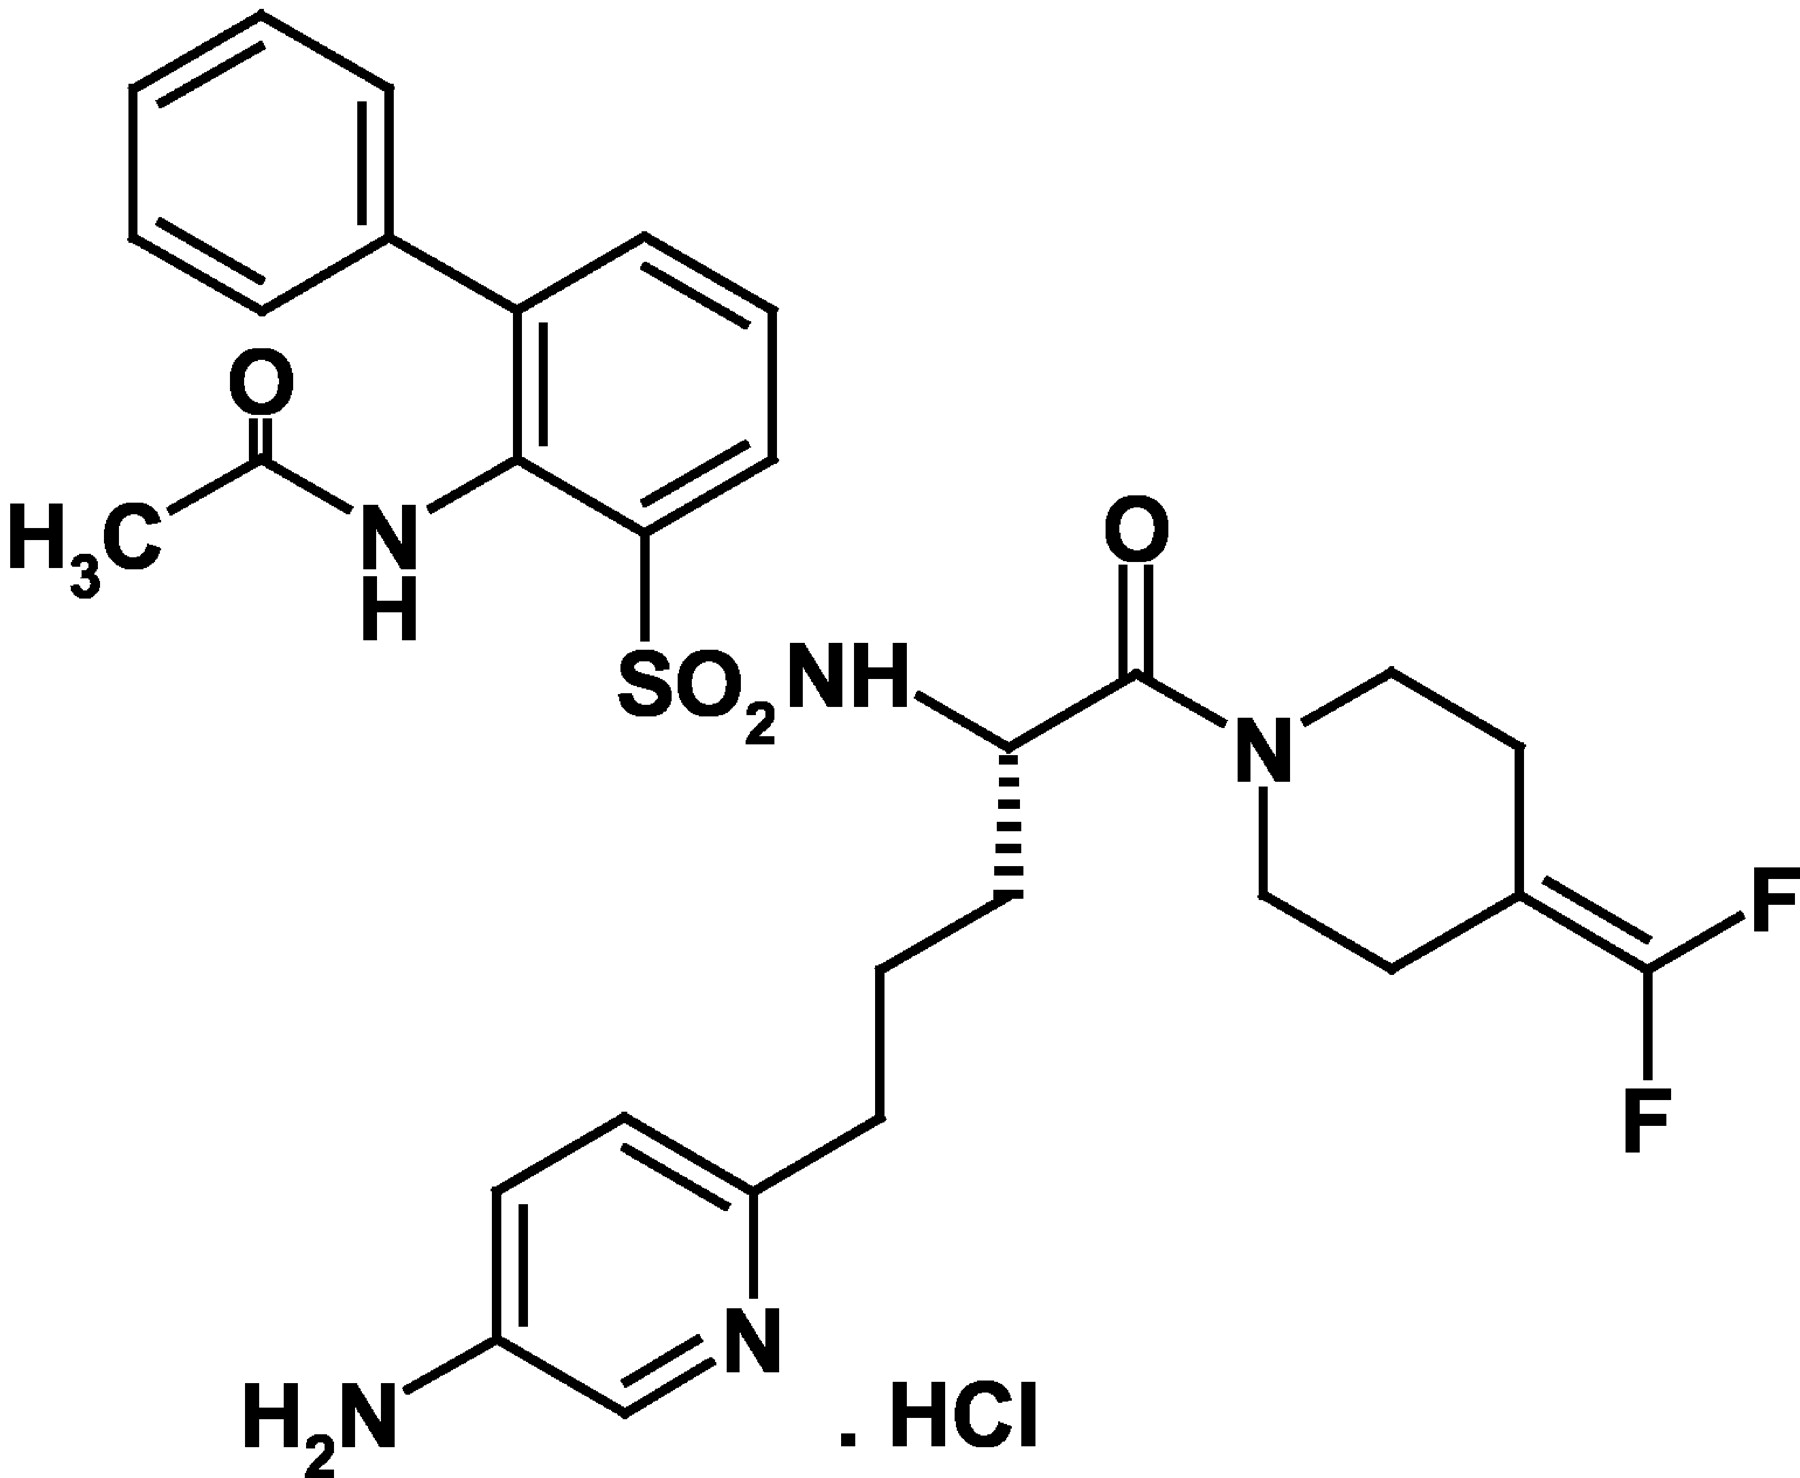 Ssr A A Novel Orally Active Thrombin Inhibitor In